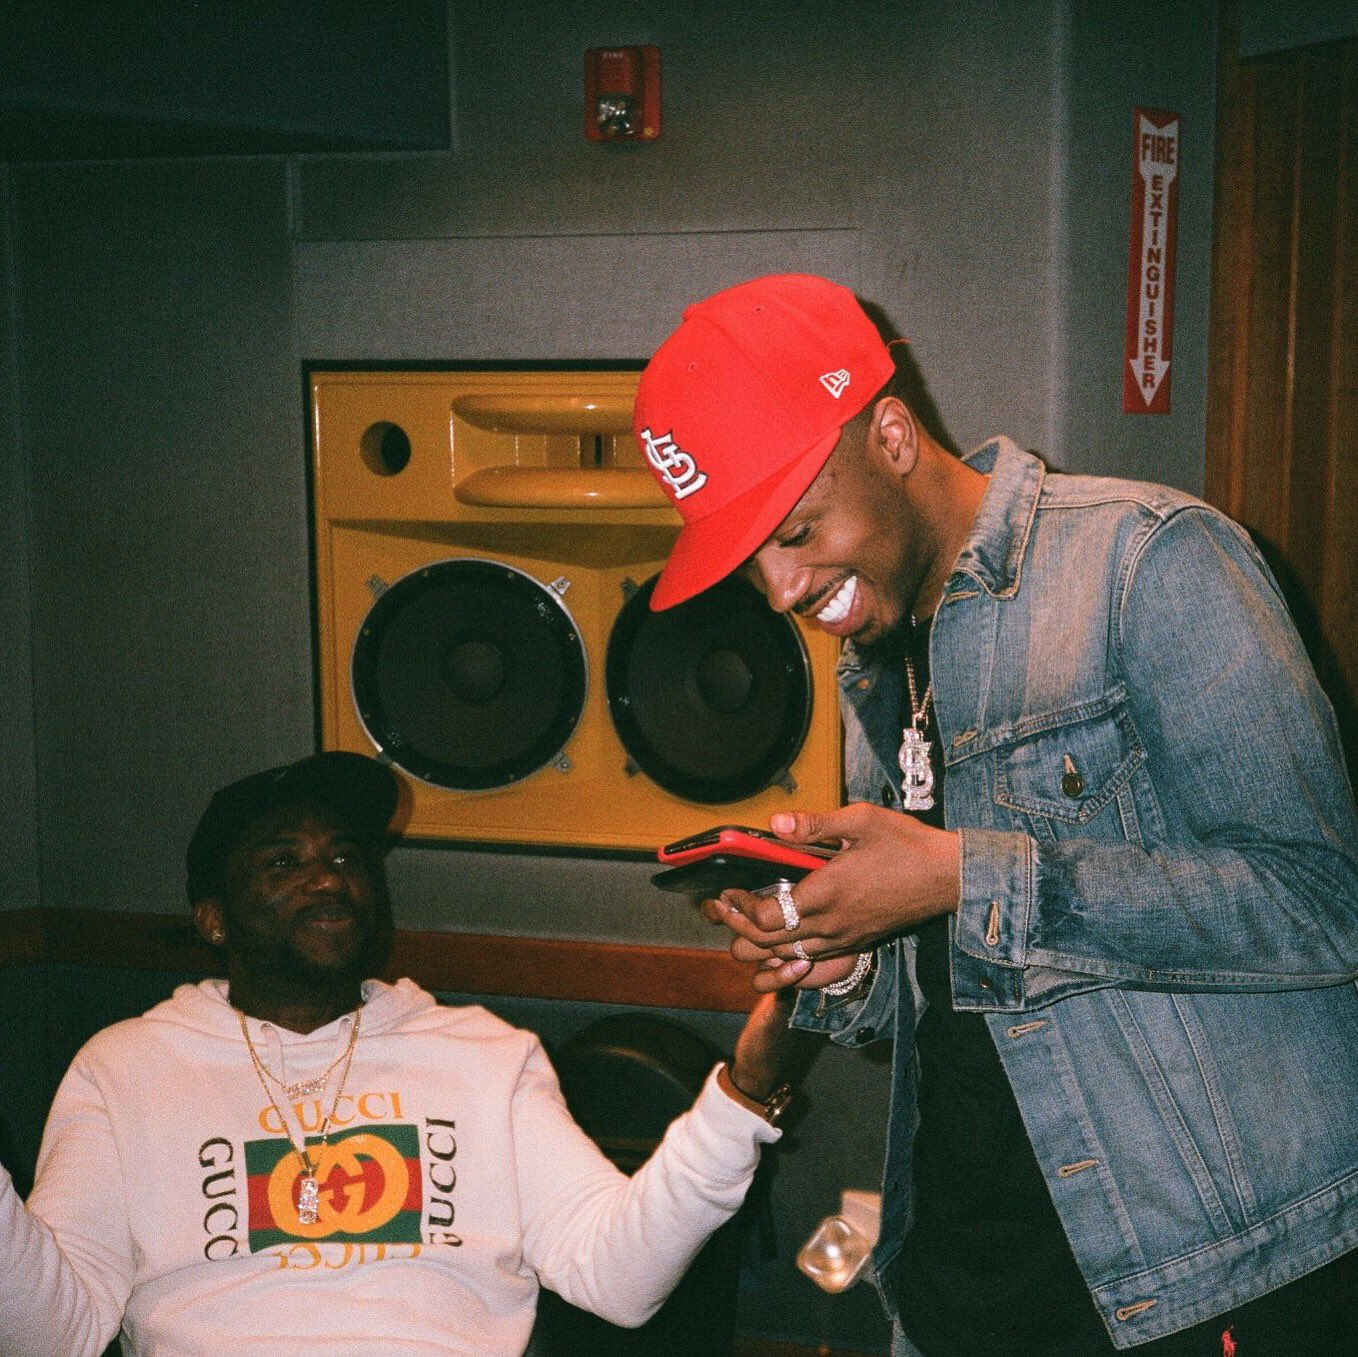 Gucci Mane & Metro Boomin Drop Collab Project